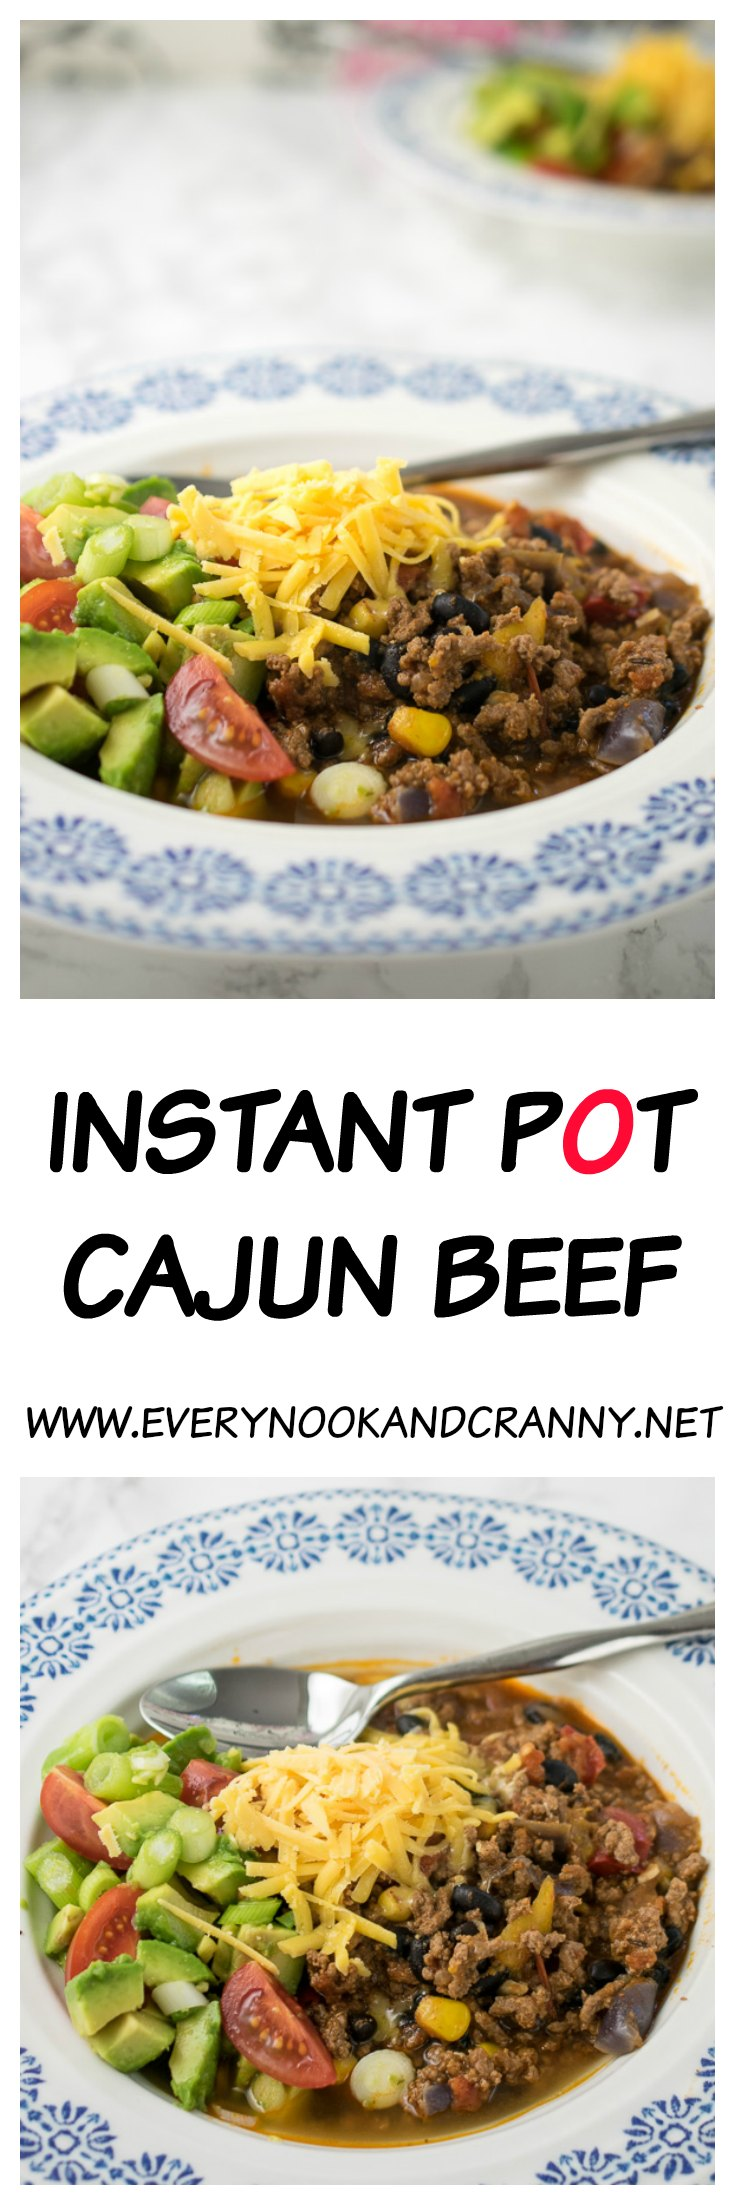 Instant Pot Cajun spiced minced beef